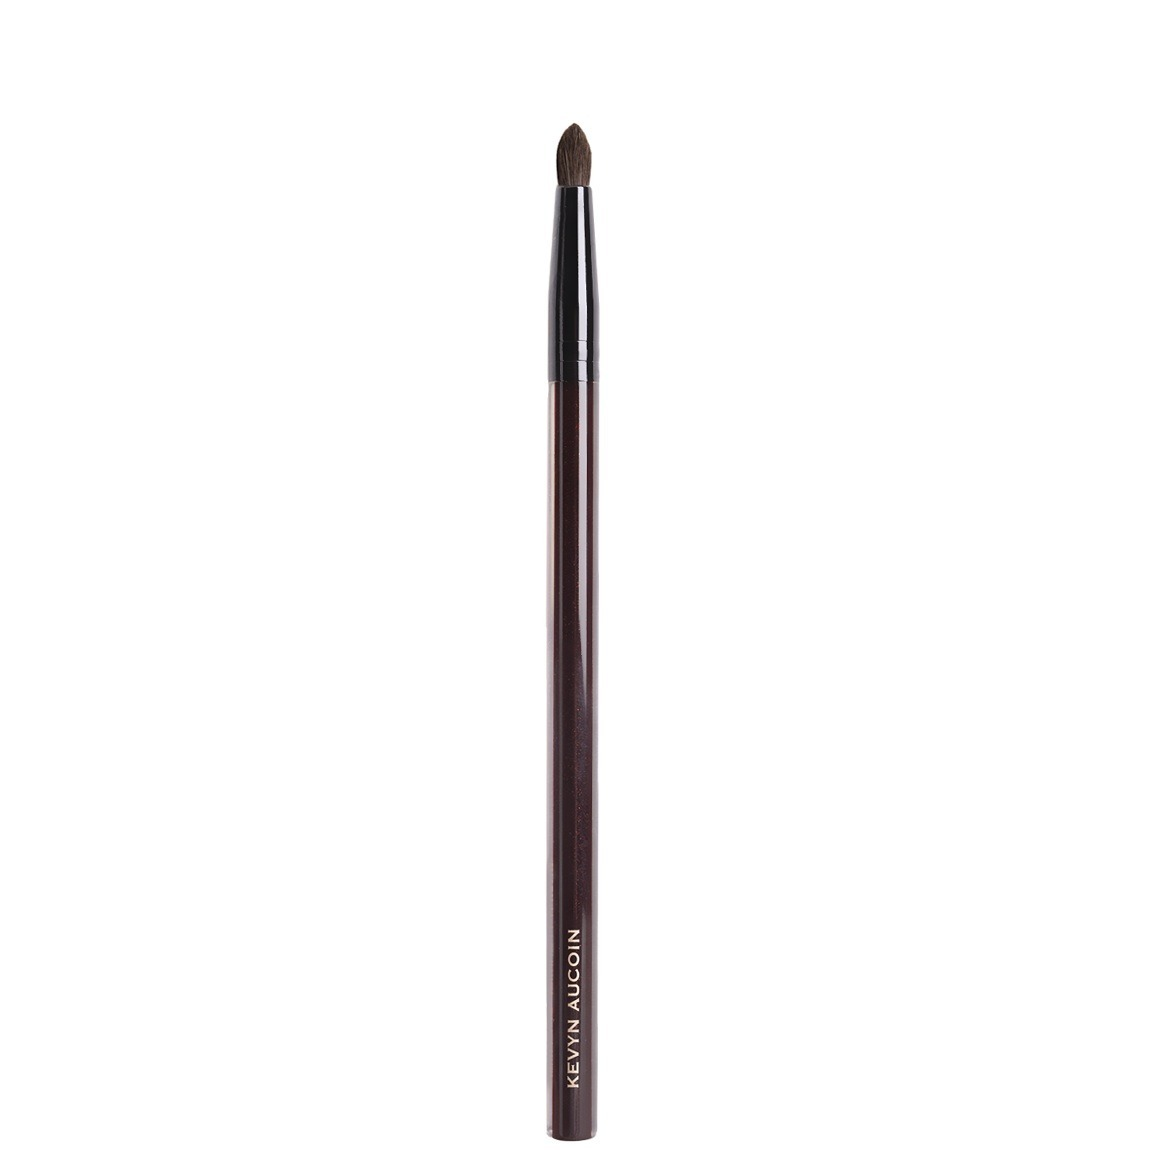 Kevyn Aucoin The Small Eyeshadow and Eyebrow Brush product swatch.